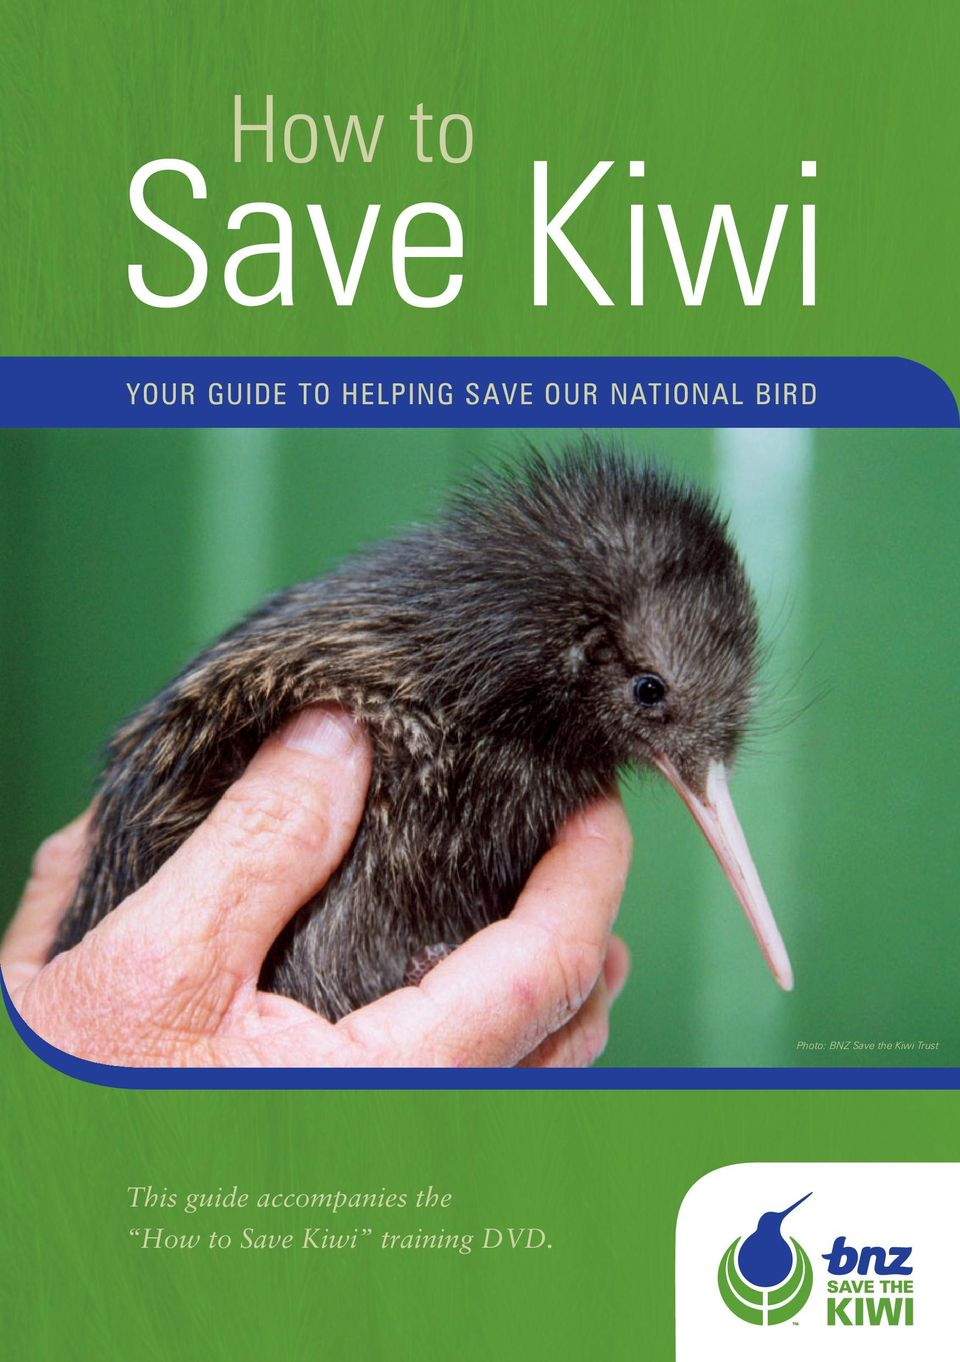 BNZ Save the Kiwi Trust This guide